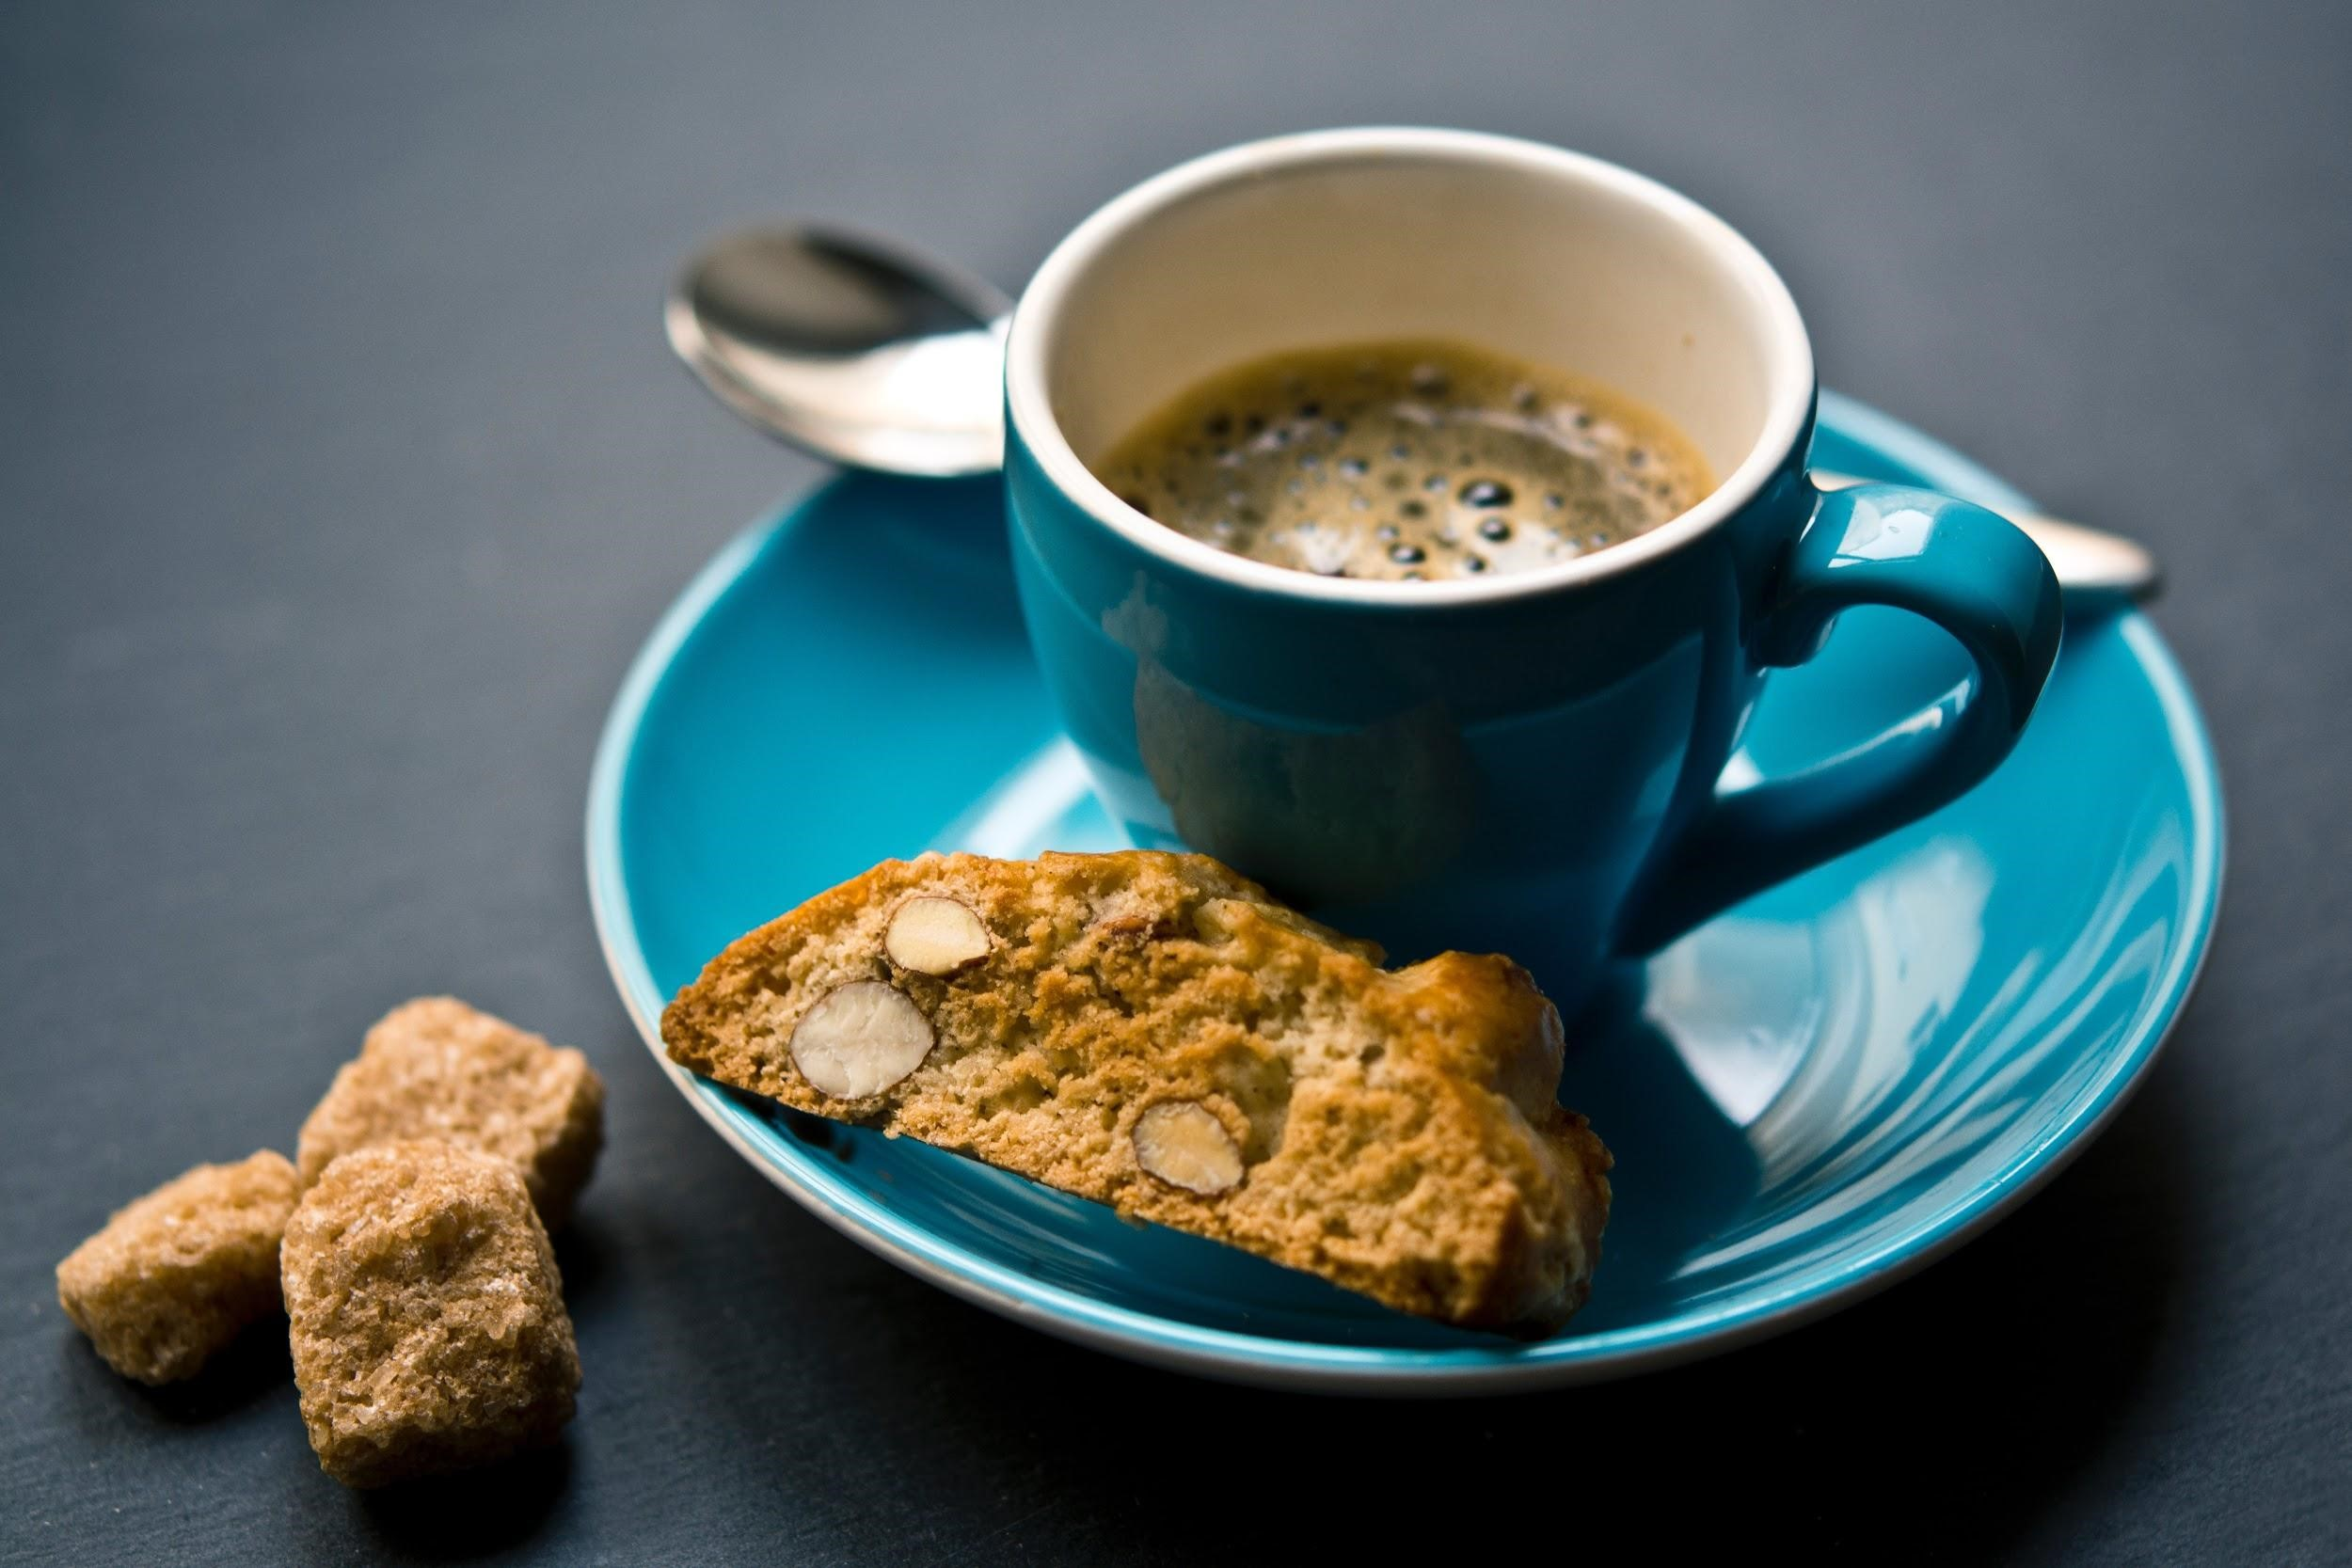 a cup of black coffee served with almond biscotti on the side